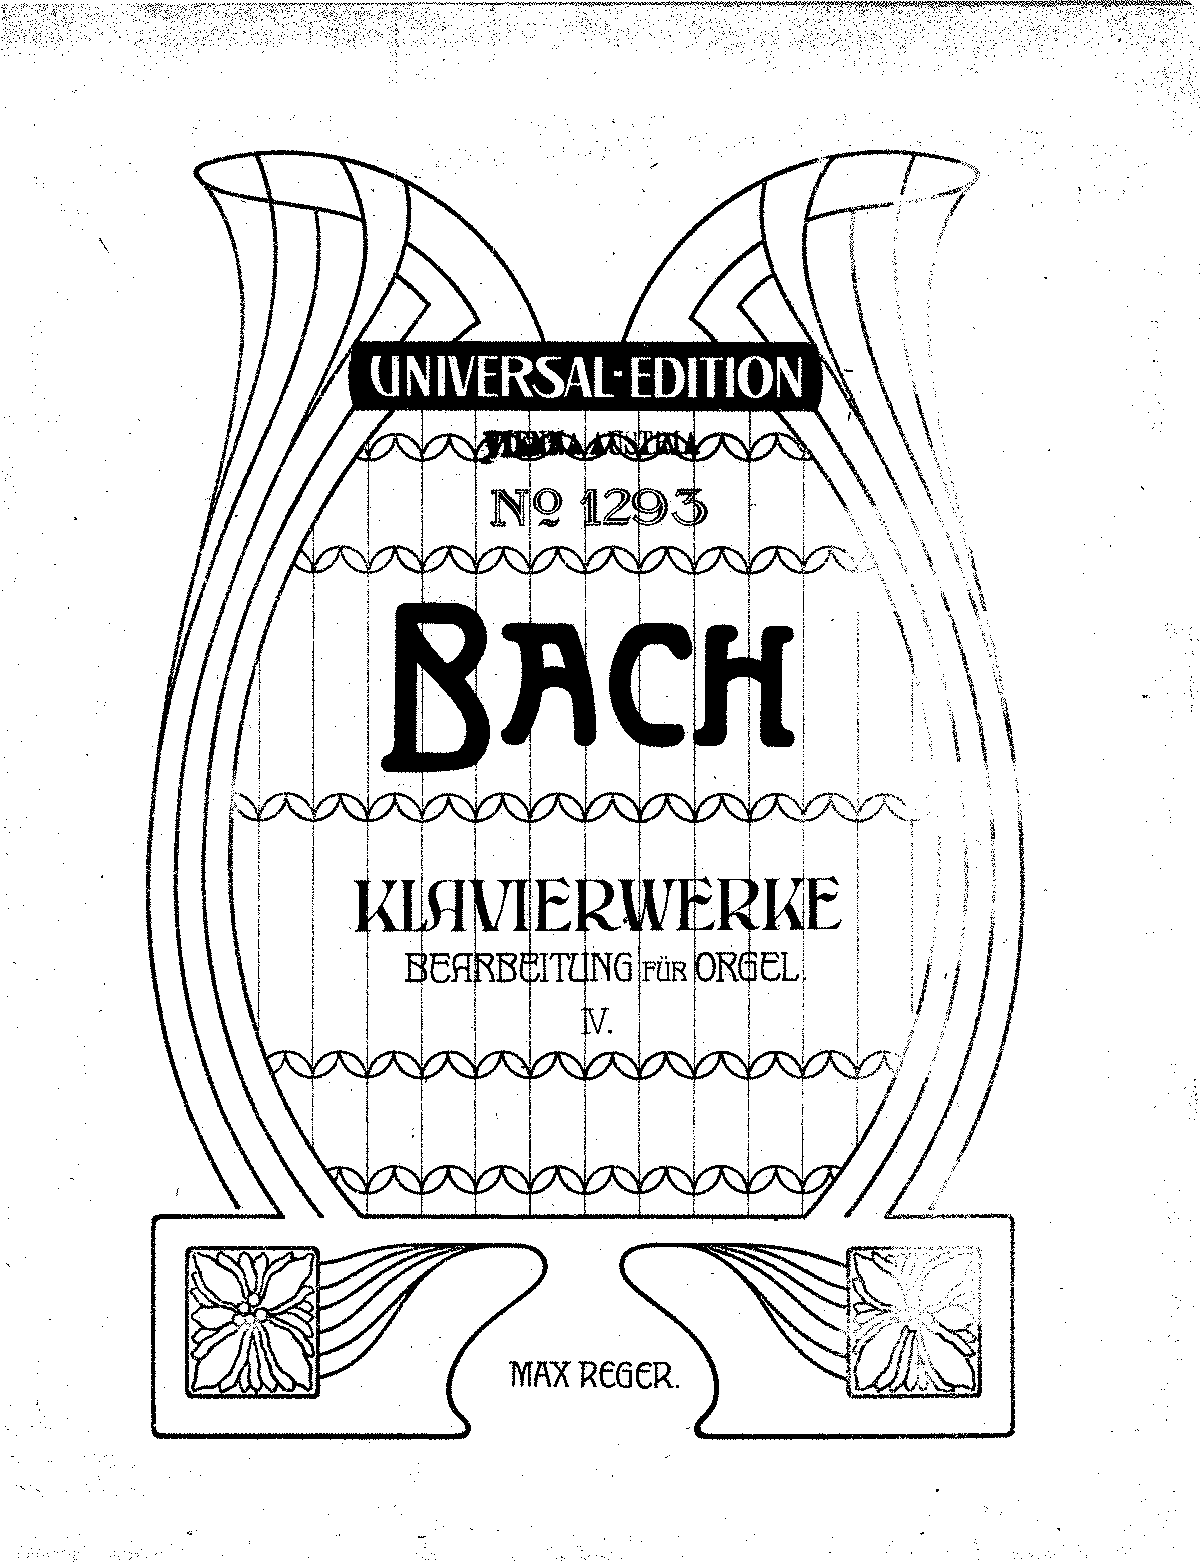 PMLP180532-Toccata F-minor-910-3035.pdf